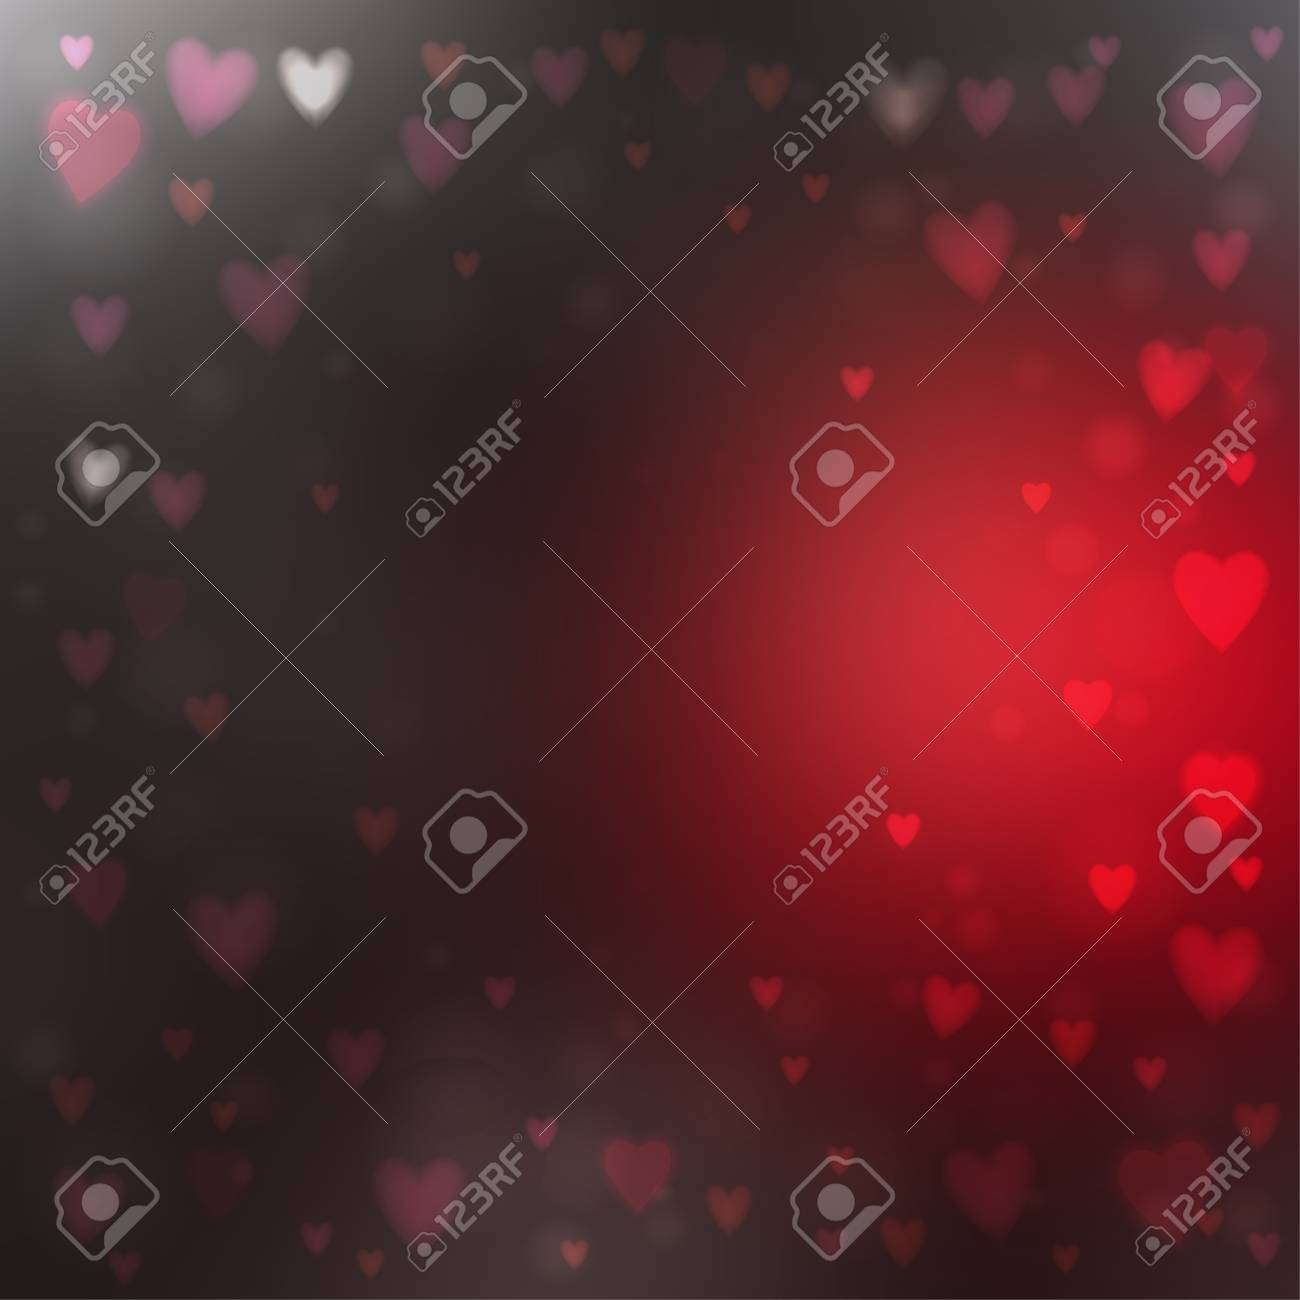 Abstract square blur red and gray background with small heart-shaped lights over it. - 126348001